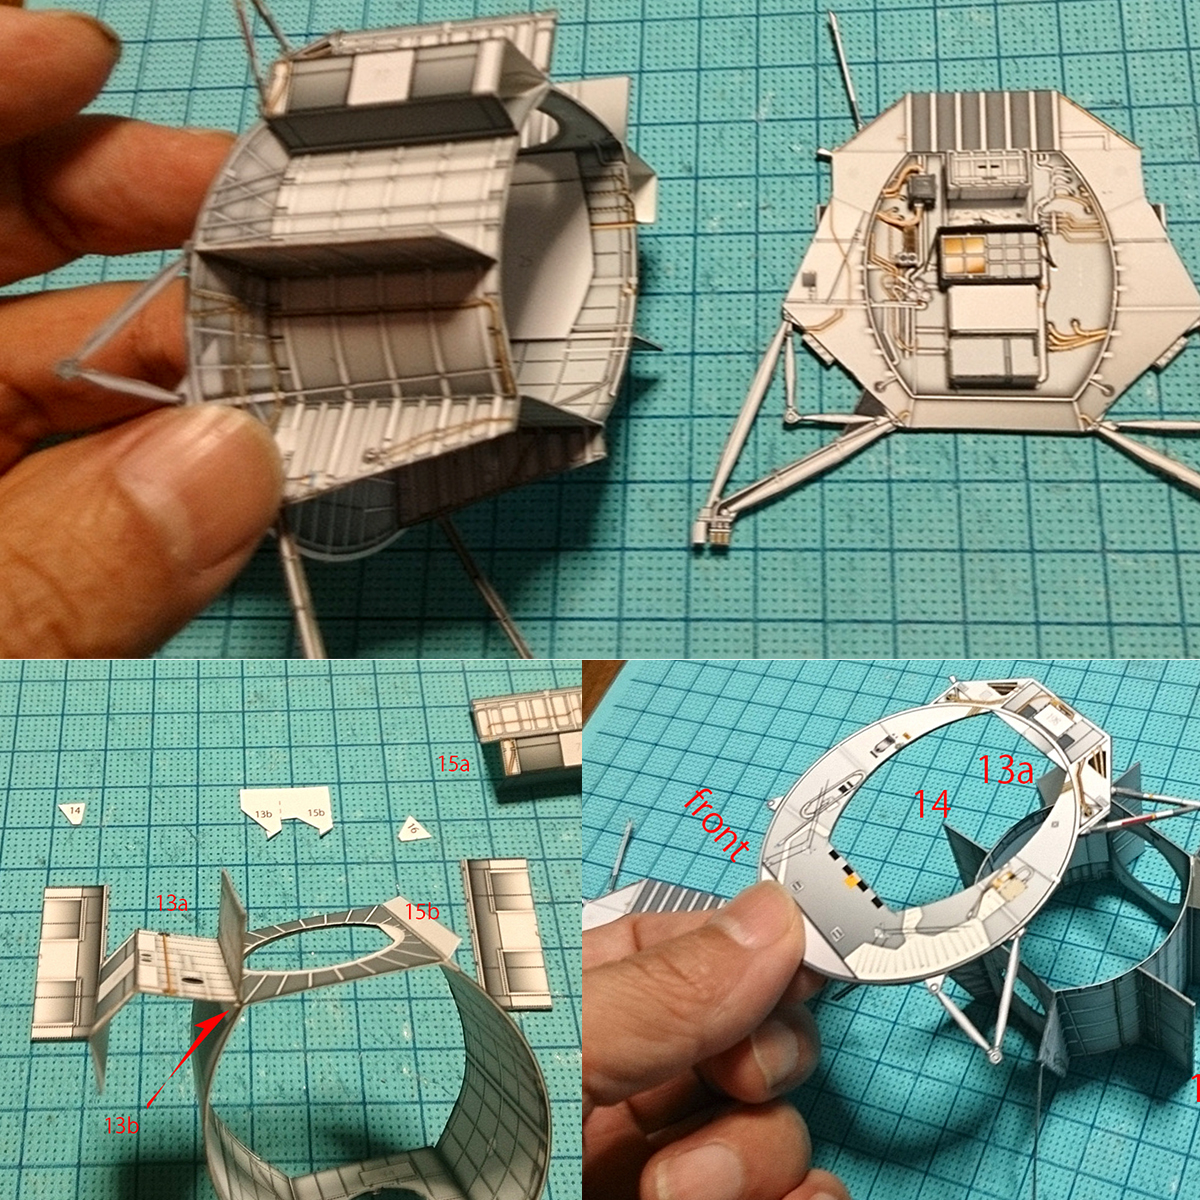 3D Puzzle Paper Model DIY Toy Space Station Assembly Toy Boys Birthday Christmas Gift for Kids DIY Handicraft's Supplies